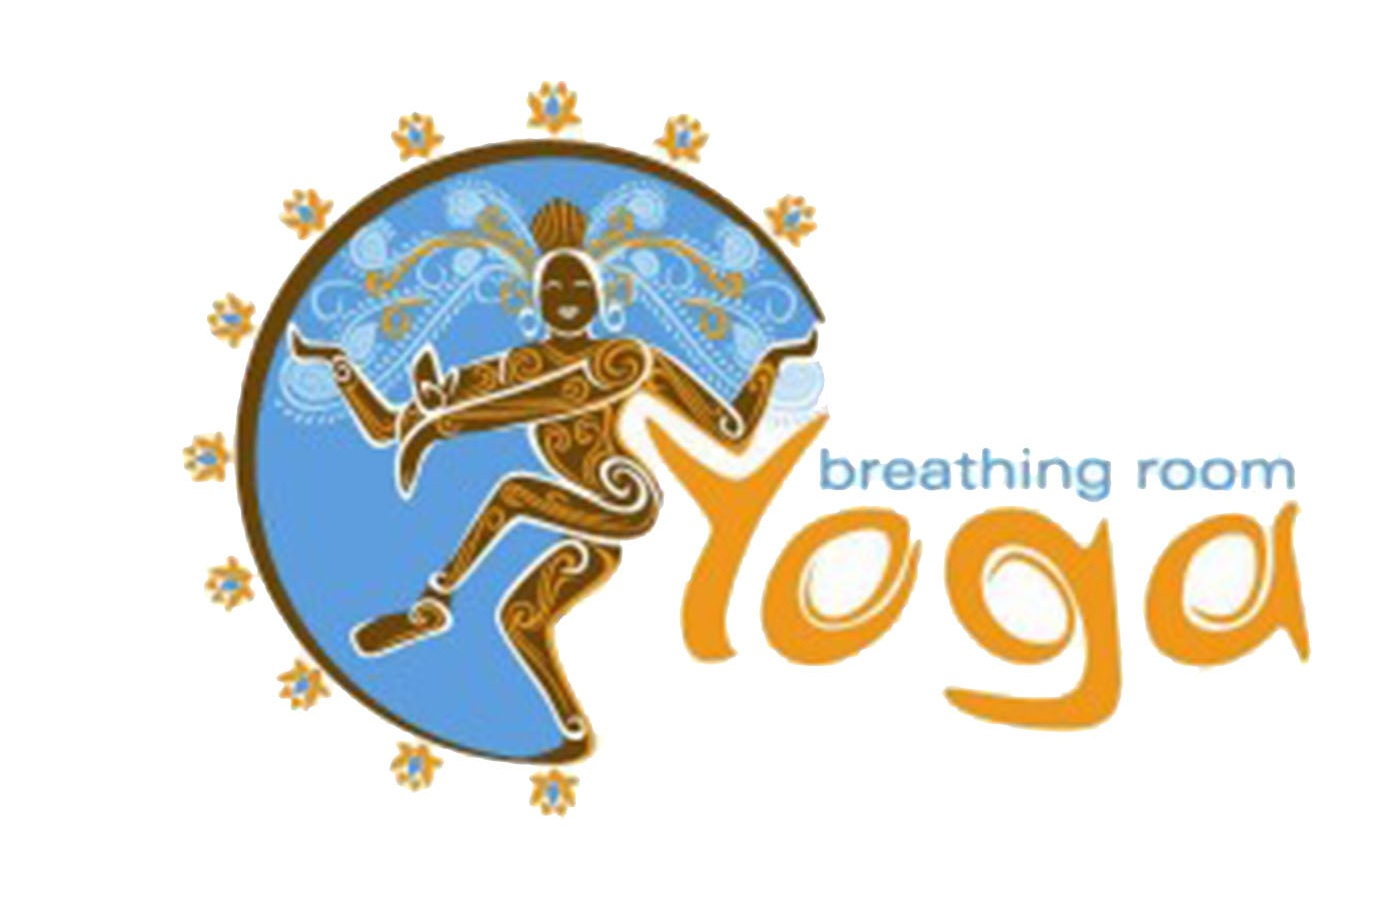 Breathing Room Yoga